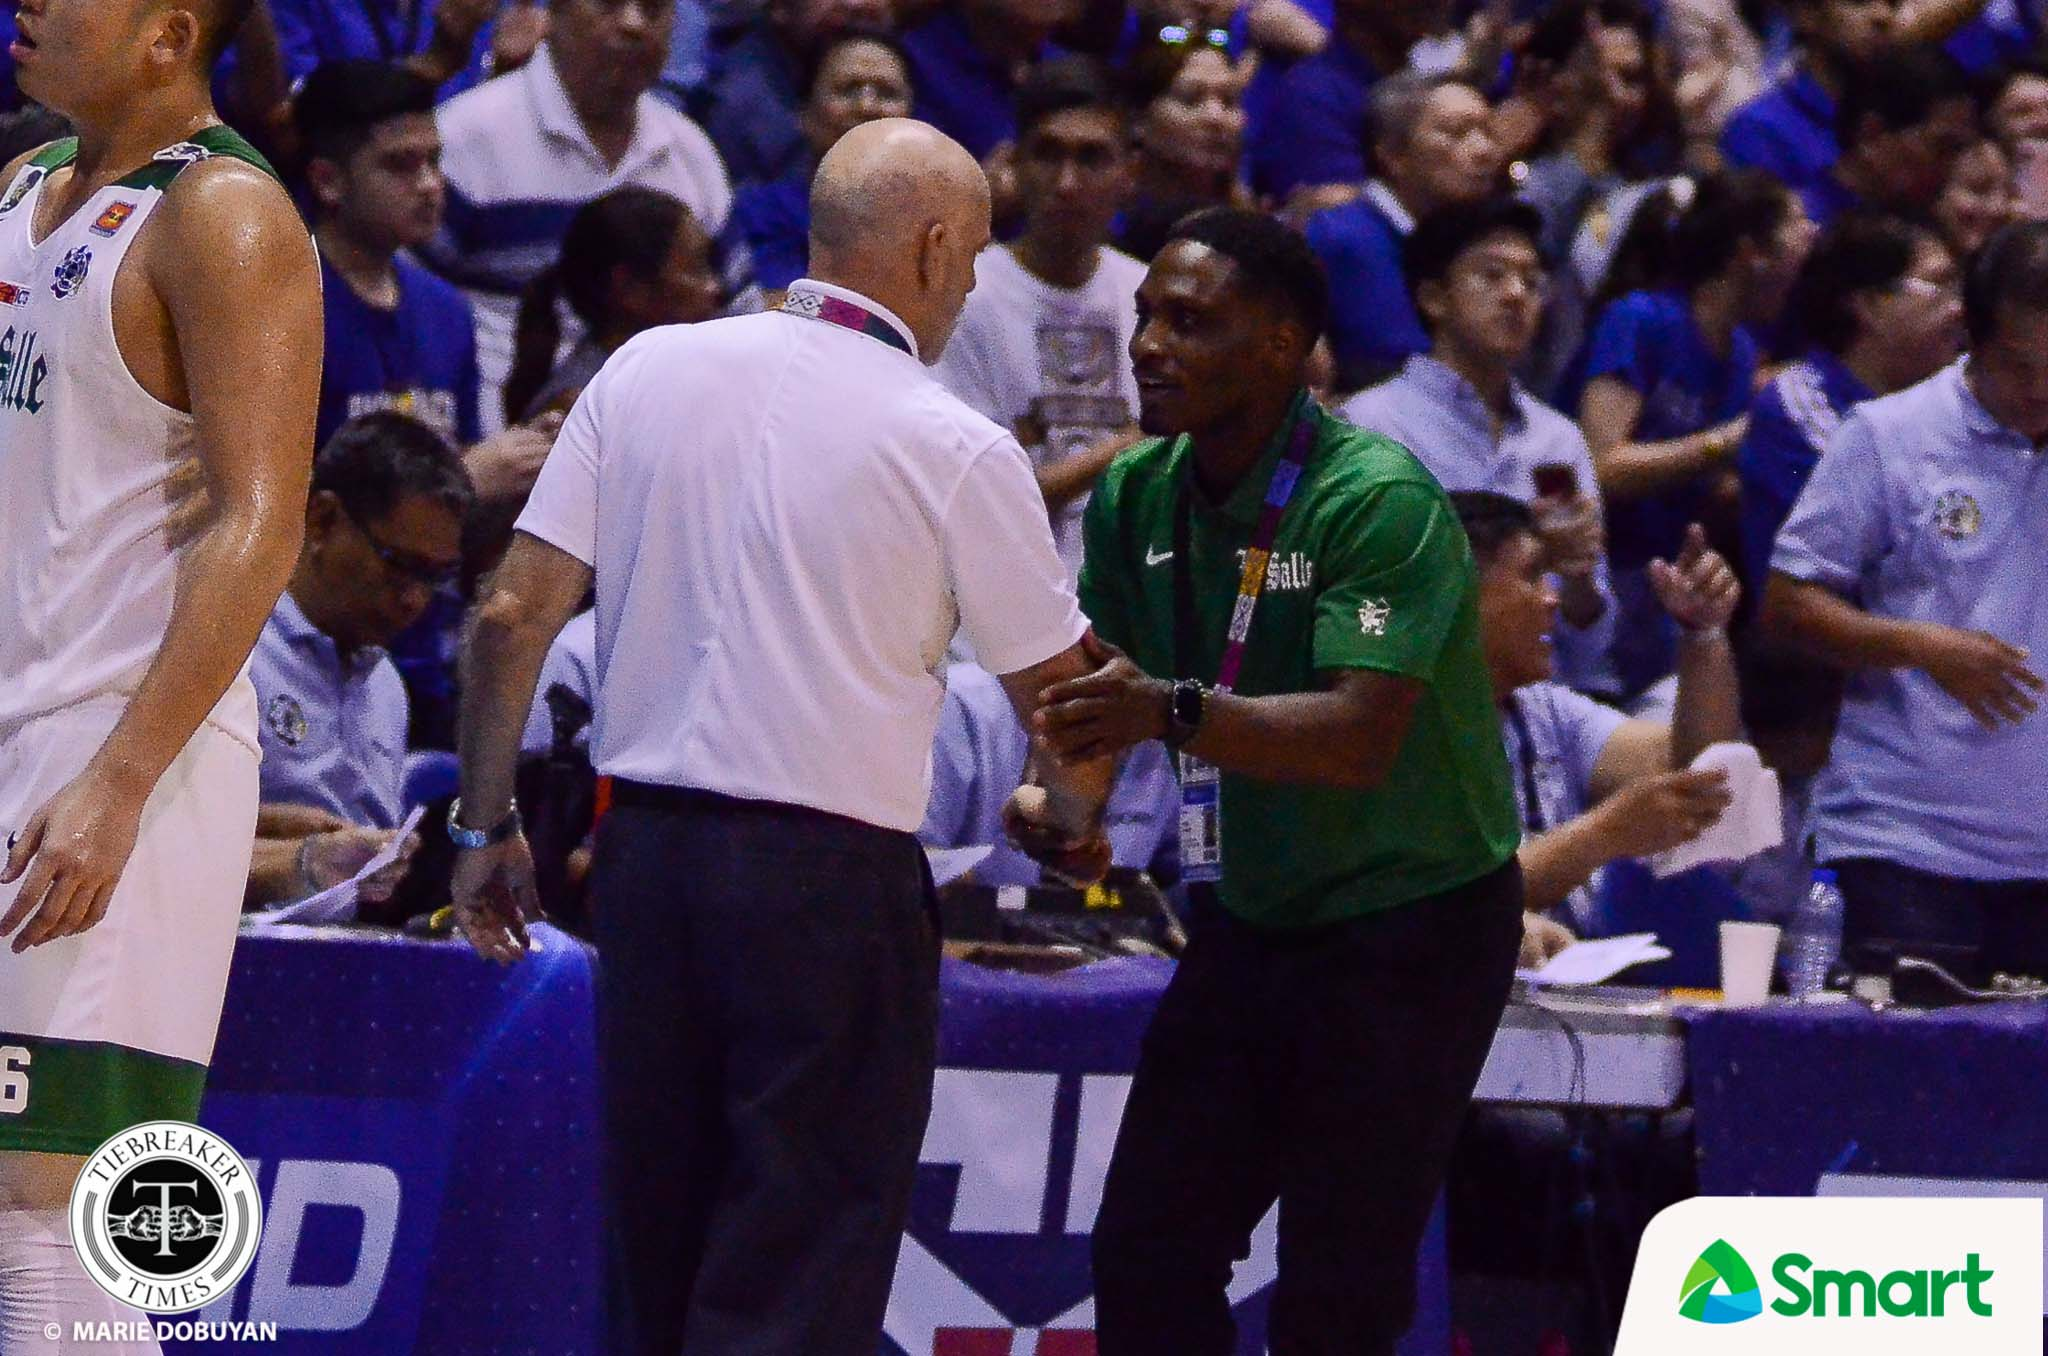 Tiebreaker Times Jermaine Byrd shares pride in competing against Tab Baldwin Basketball DLSU News UAAP  UAAP Season 82 Men's Basketball UAAP Season 82 Jermaine Byrd DLSU Men's Basketball